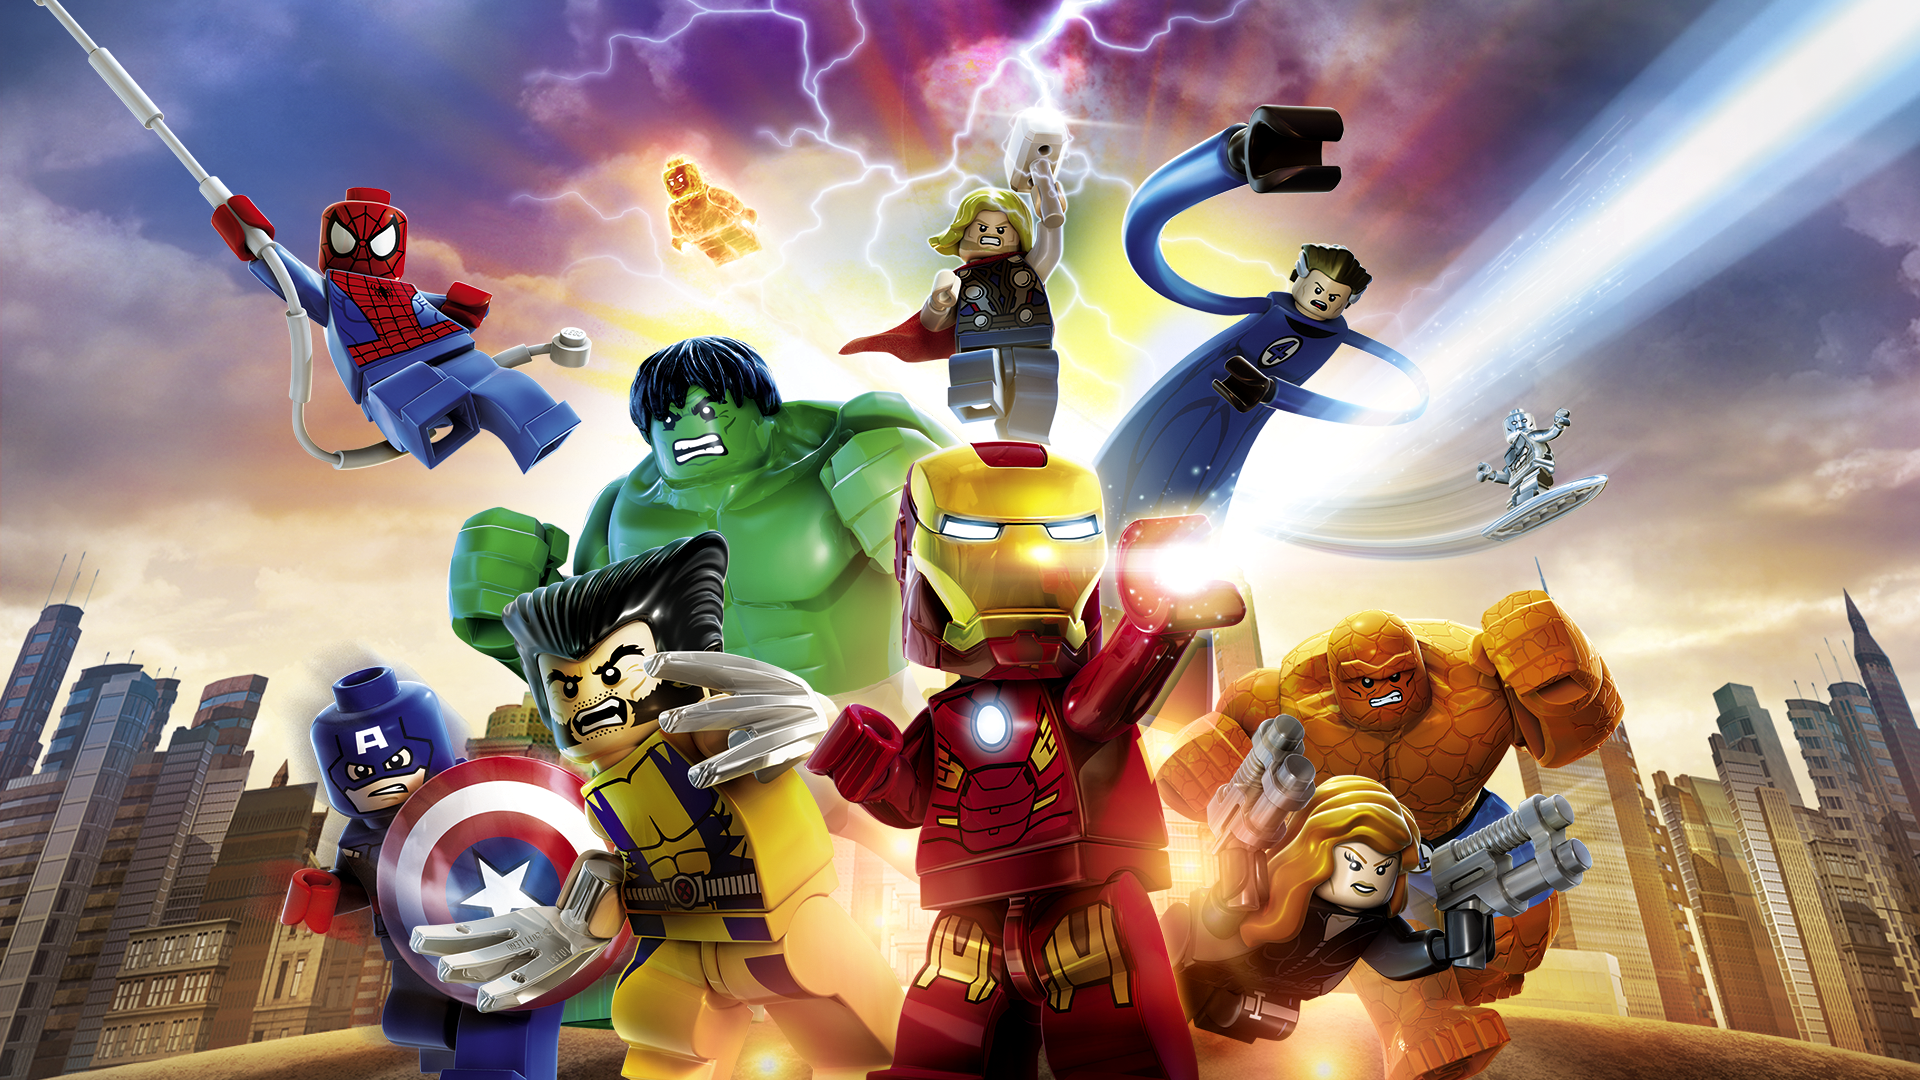 Superheroes Who Is Your Hero Lego Marvel Super Heroes Lego Wallpaper Lego Marvel